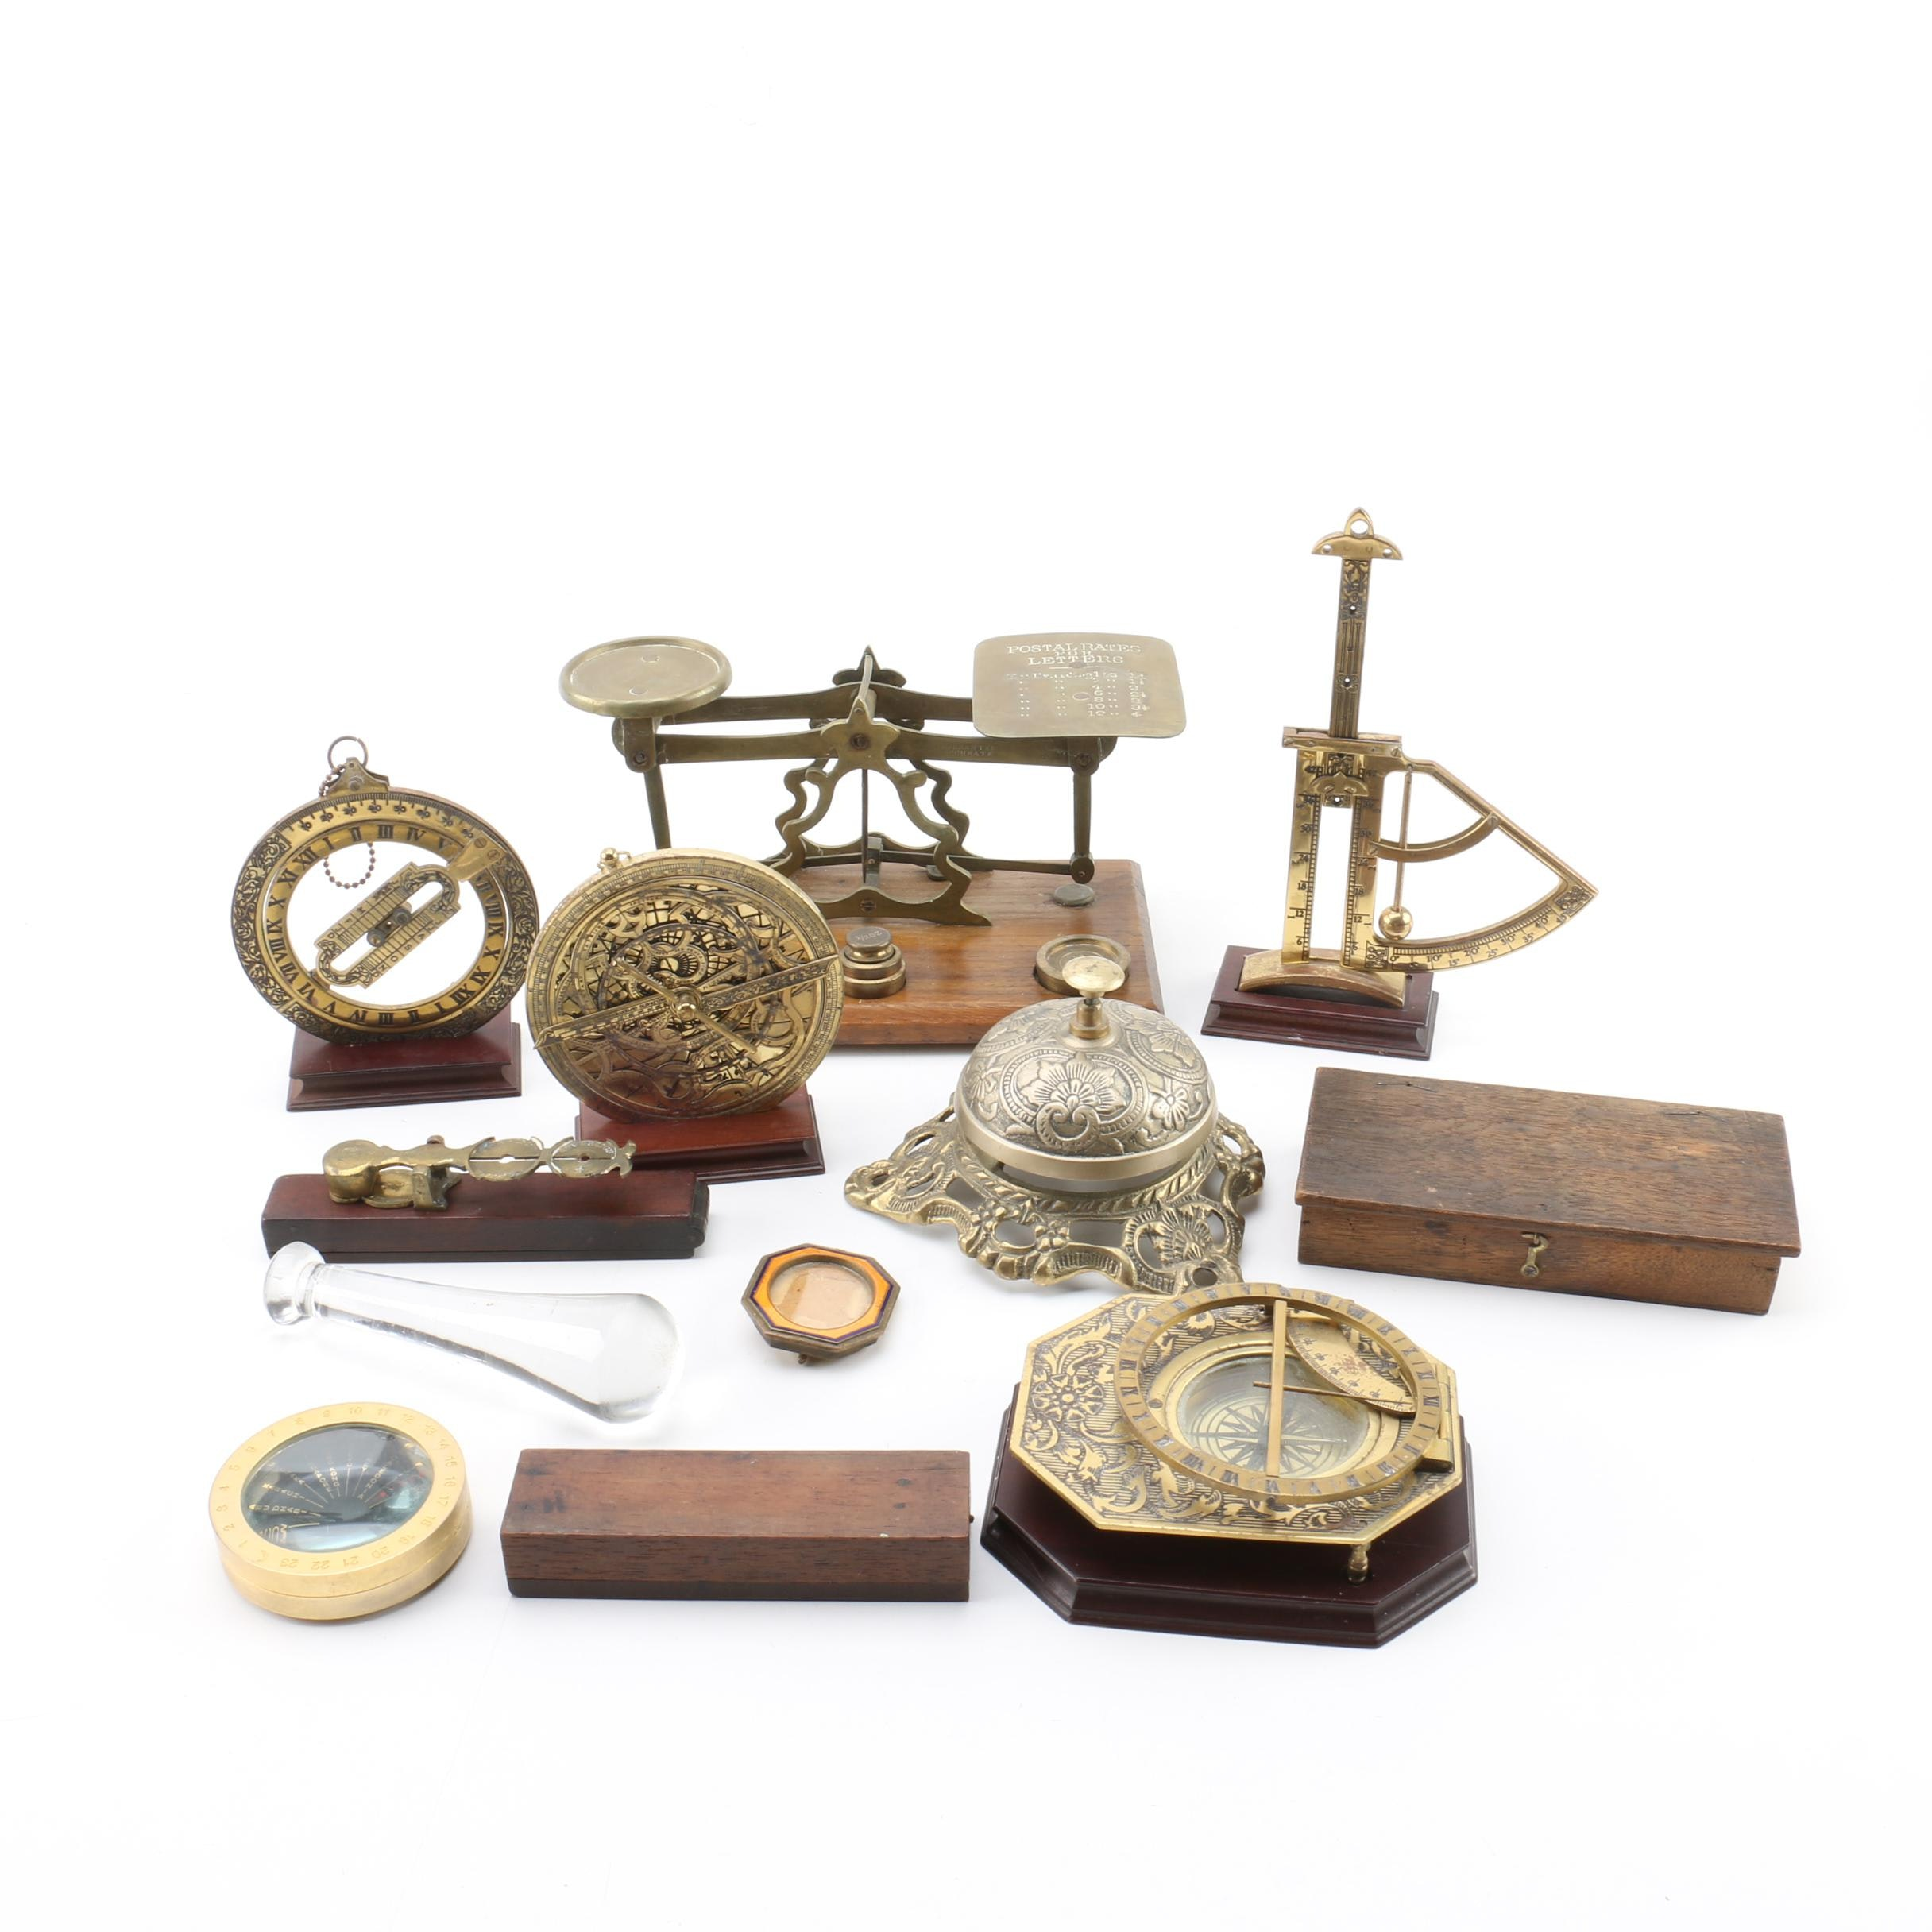 Antique Balances, Cast Call Bell, Franklin Mint Reproductions and More